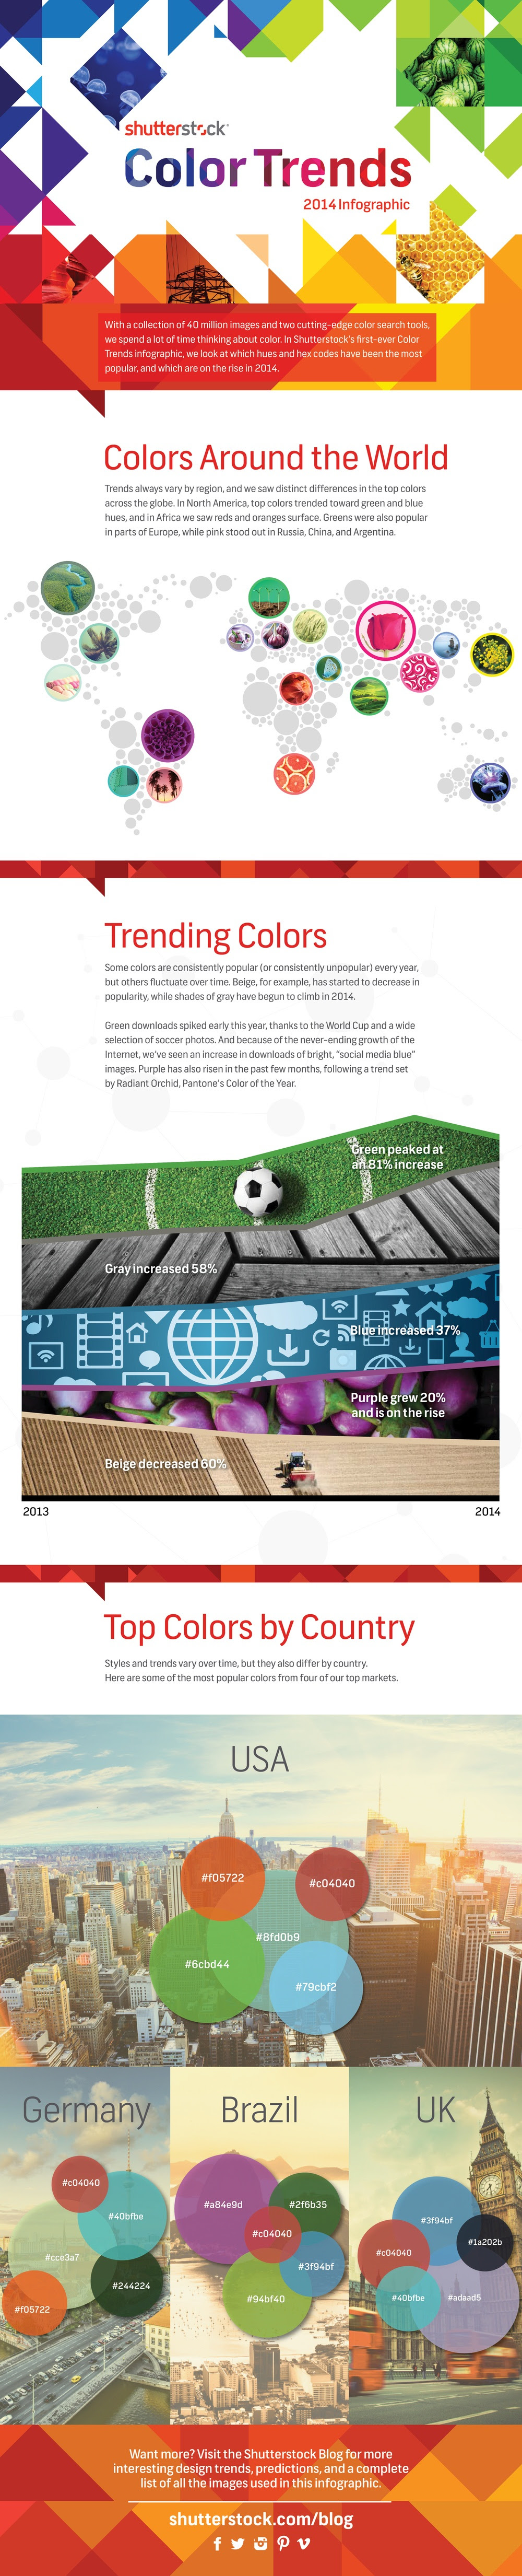 #Infographic: The Top Color Trends Of 2014 - #design